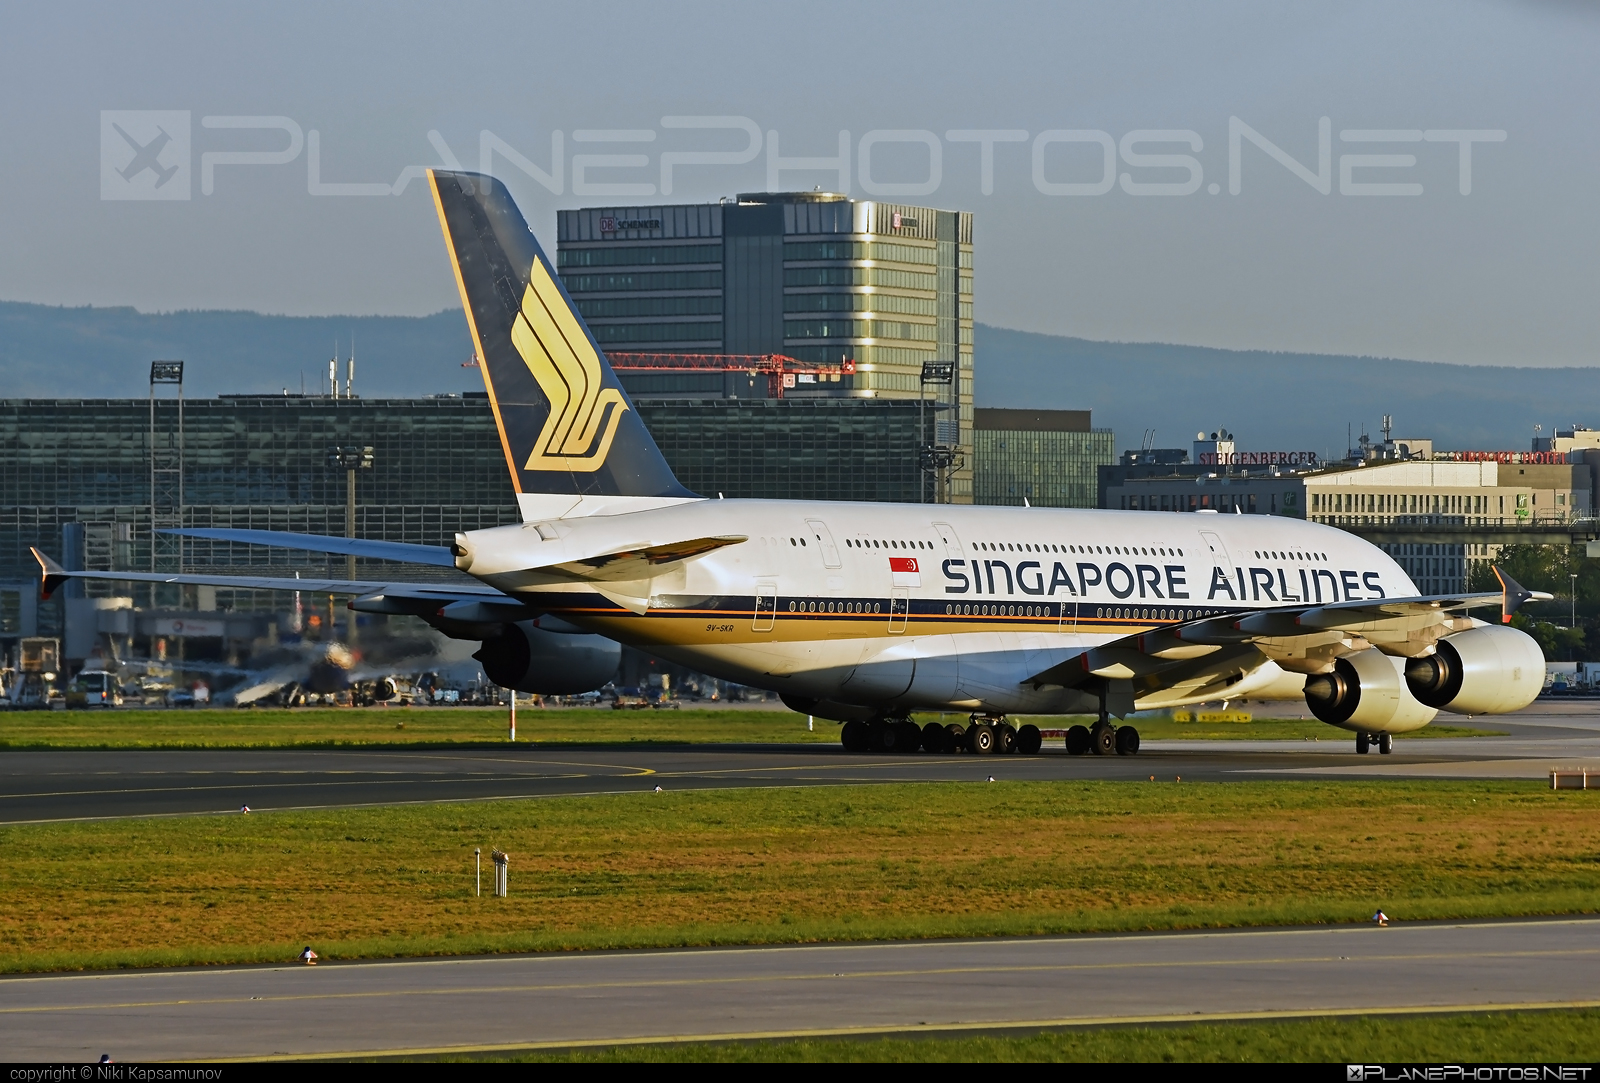 Airbus A380-841 - 9V-SKR operated by Singapore Airlines #a380 #a380family #airbus #airbus380 #singaporeairlines